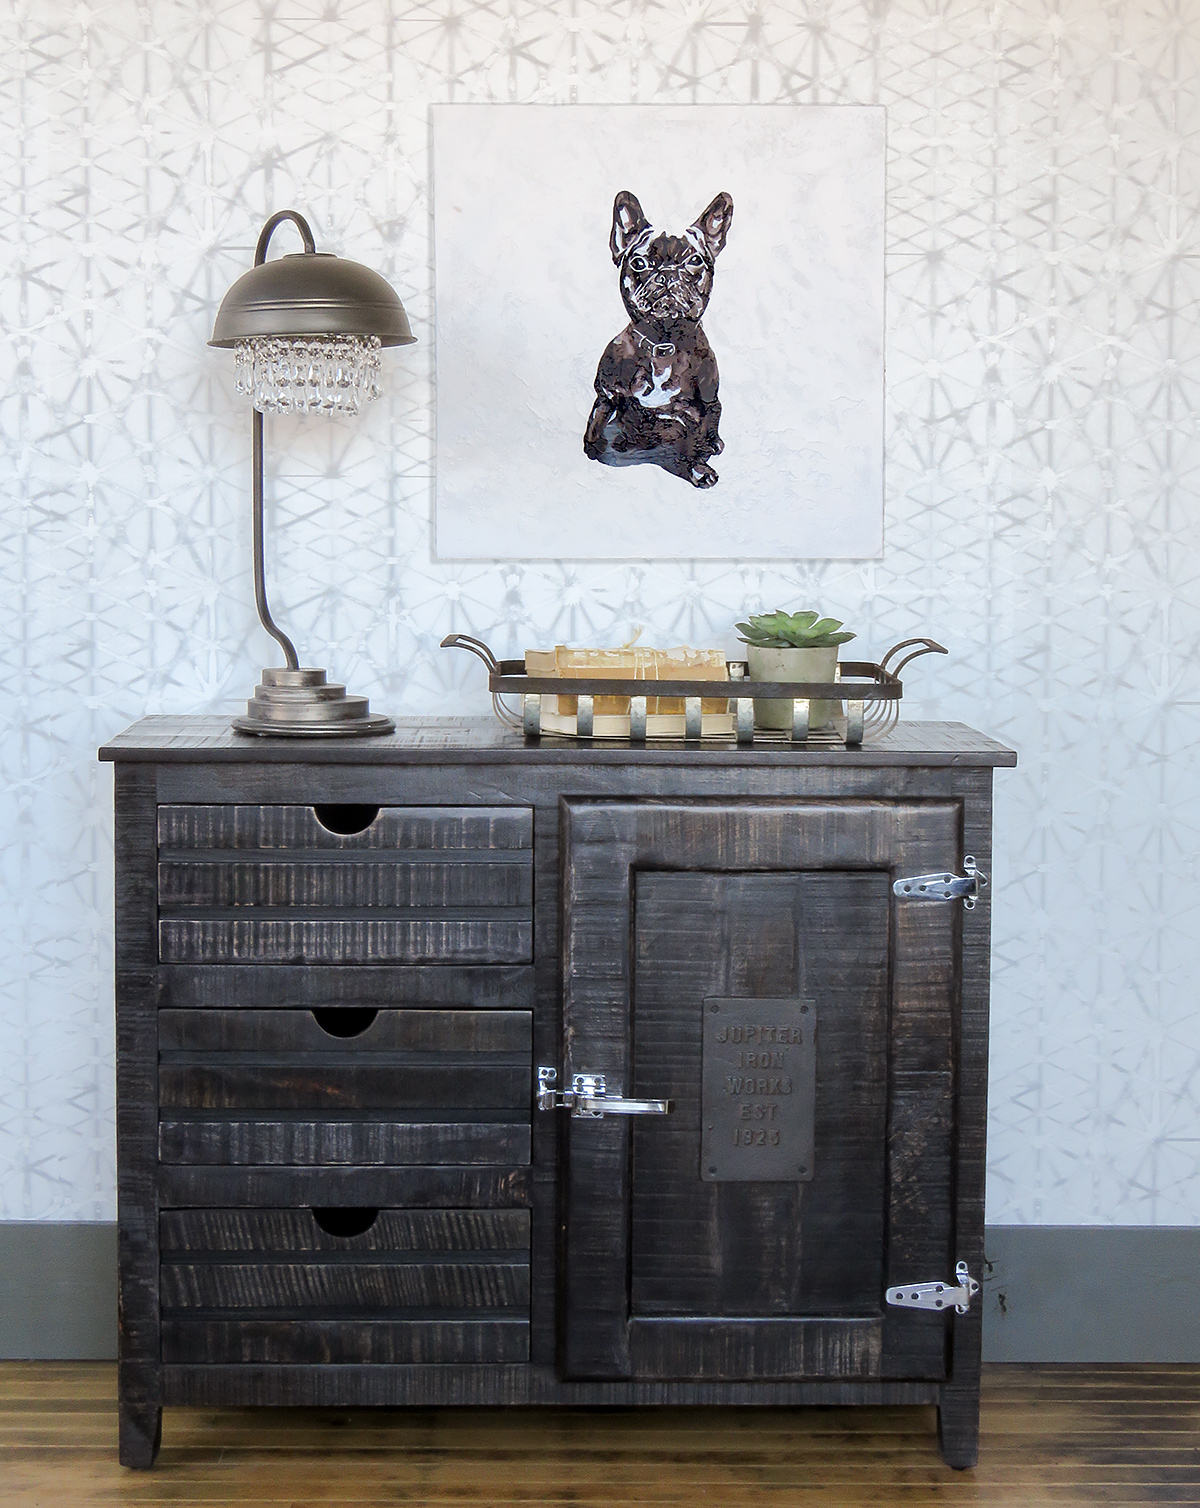 Fun idea for the foyer, or really almost any room in the house. Love the vintage rust cabinet, the lamp and that cute Frenchie art!